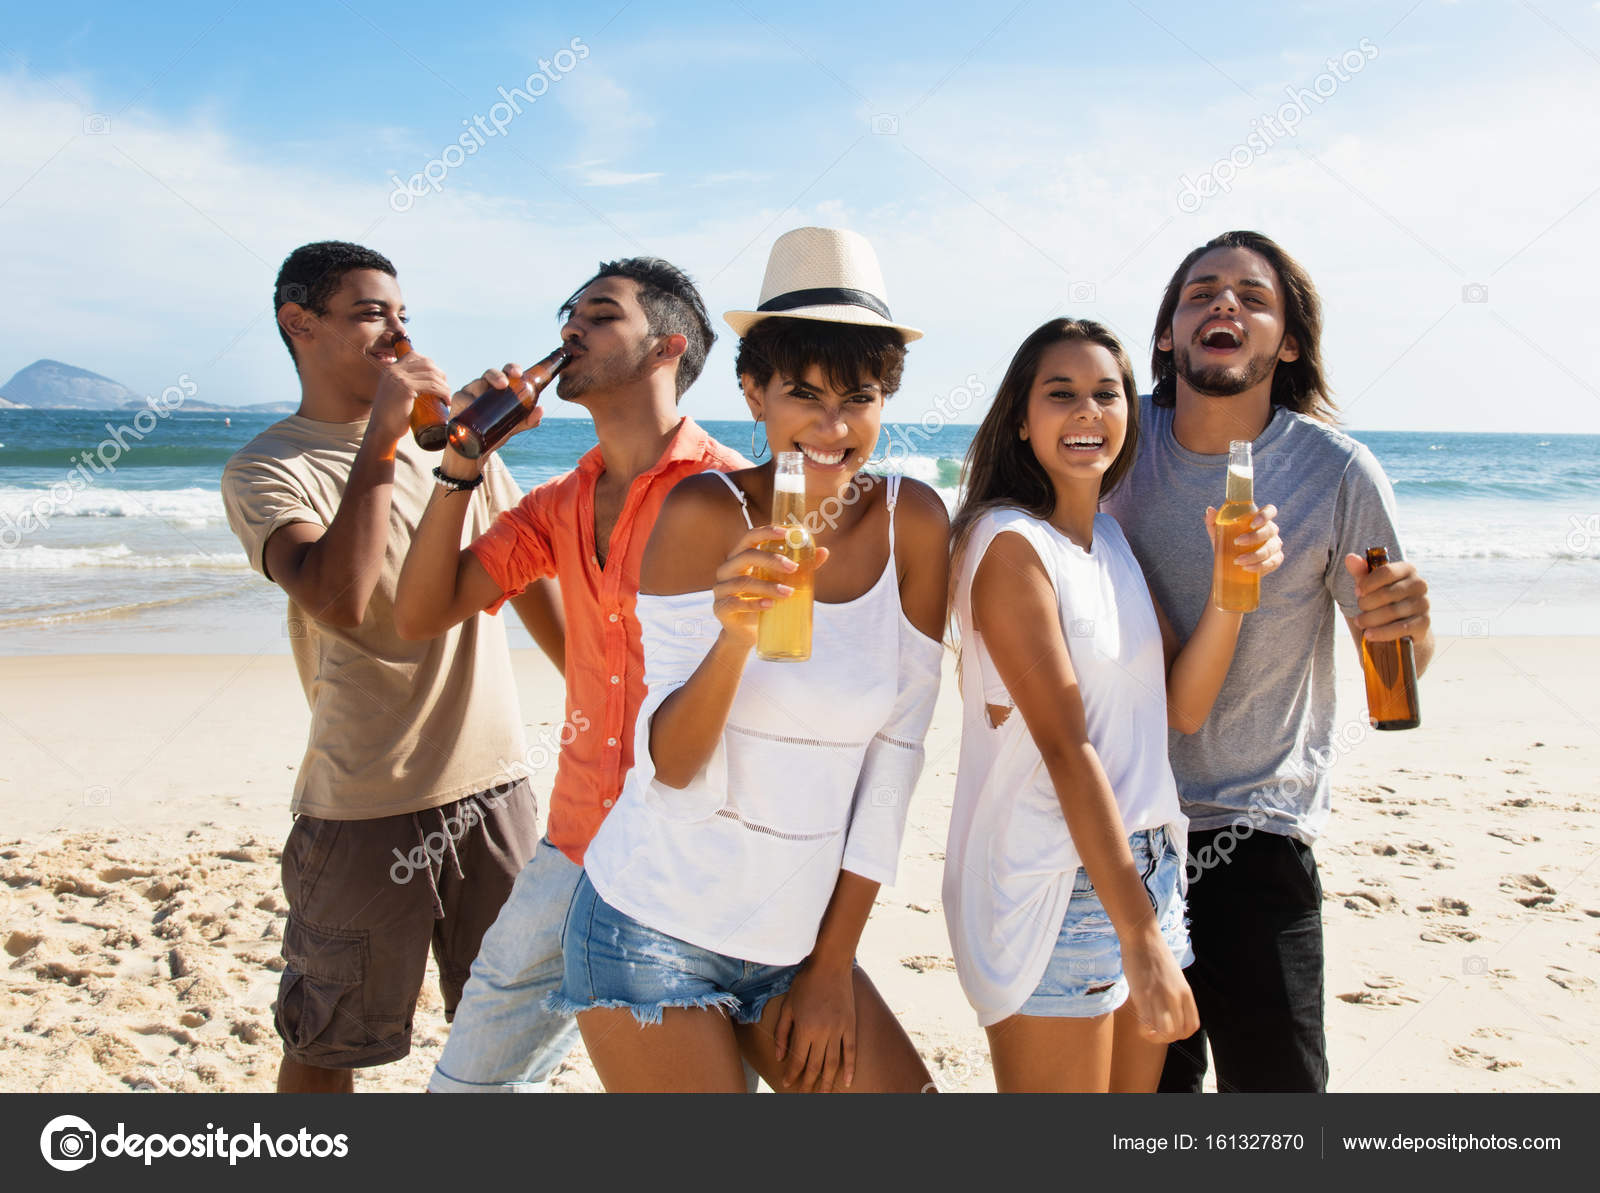 Travel groups for young adults